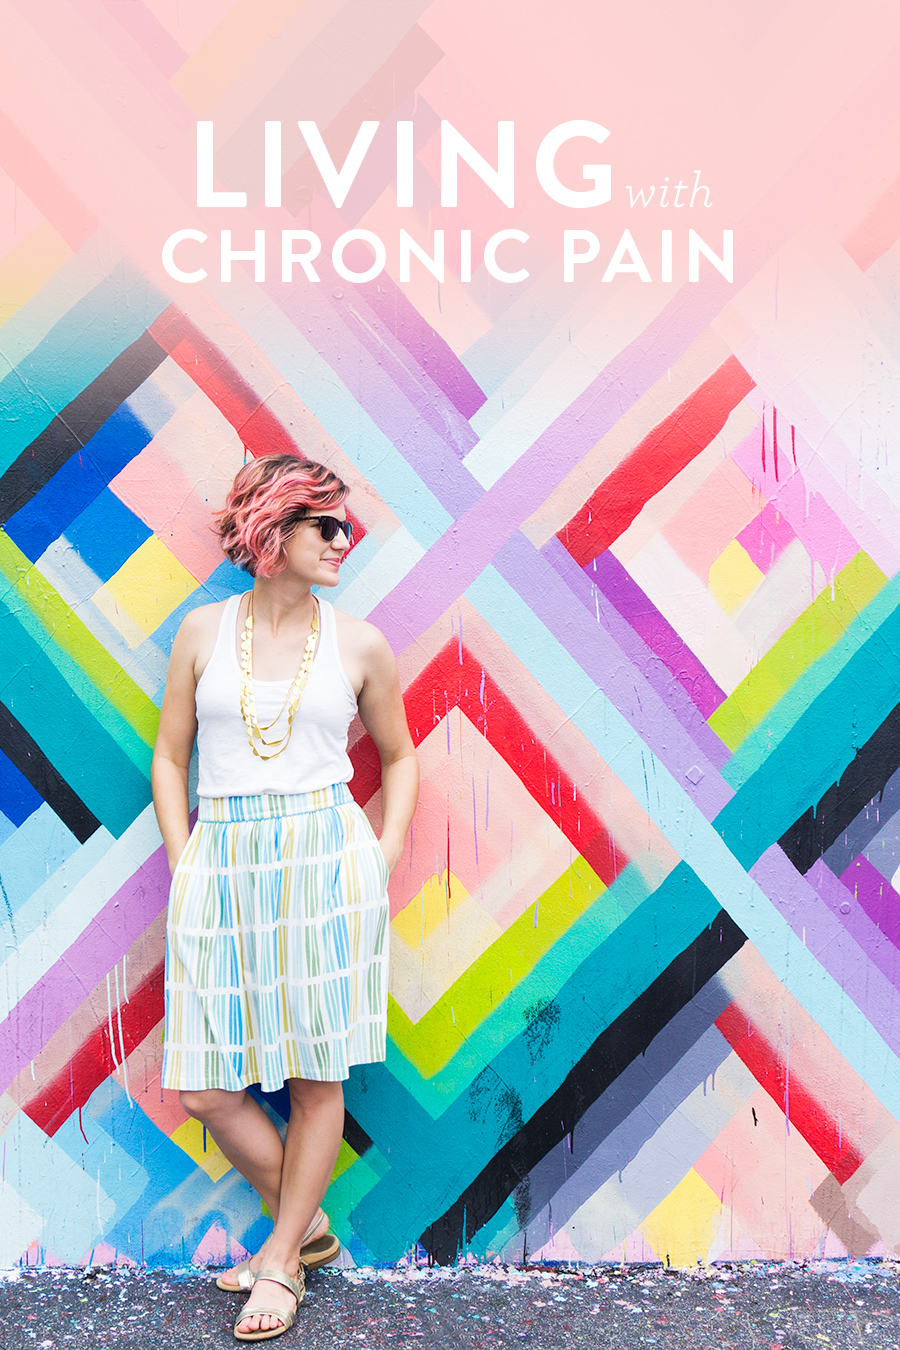 DIY Blogger Sarah Khandjian shares an update about living with chronic foot pain since she was a child and what's helped her cope.